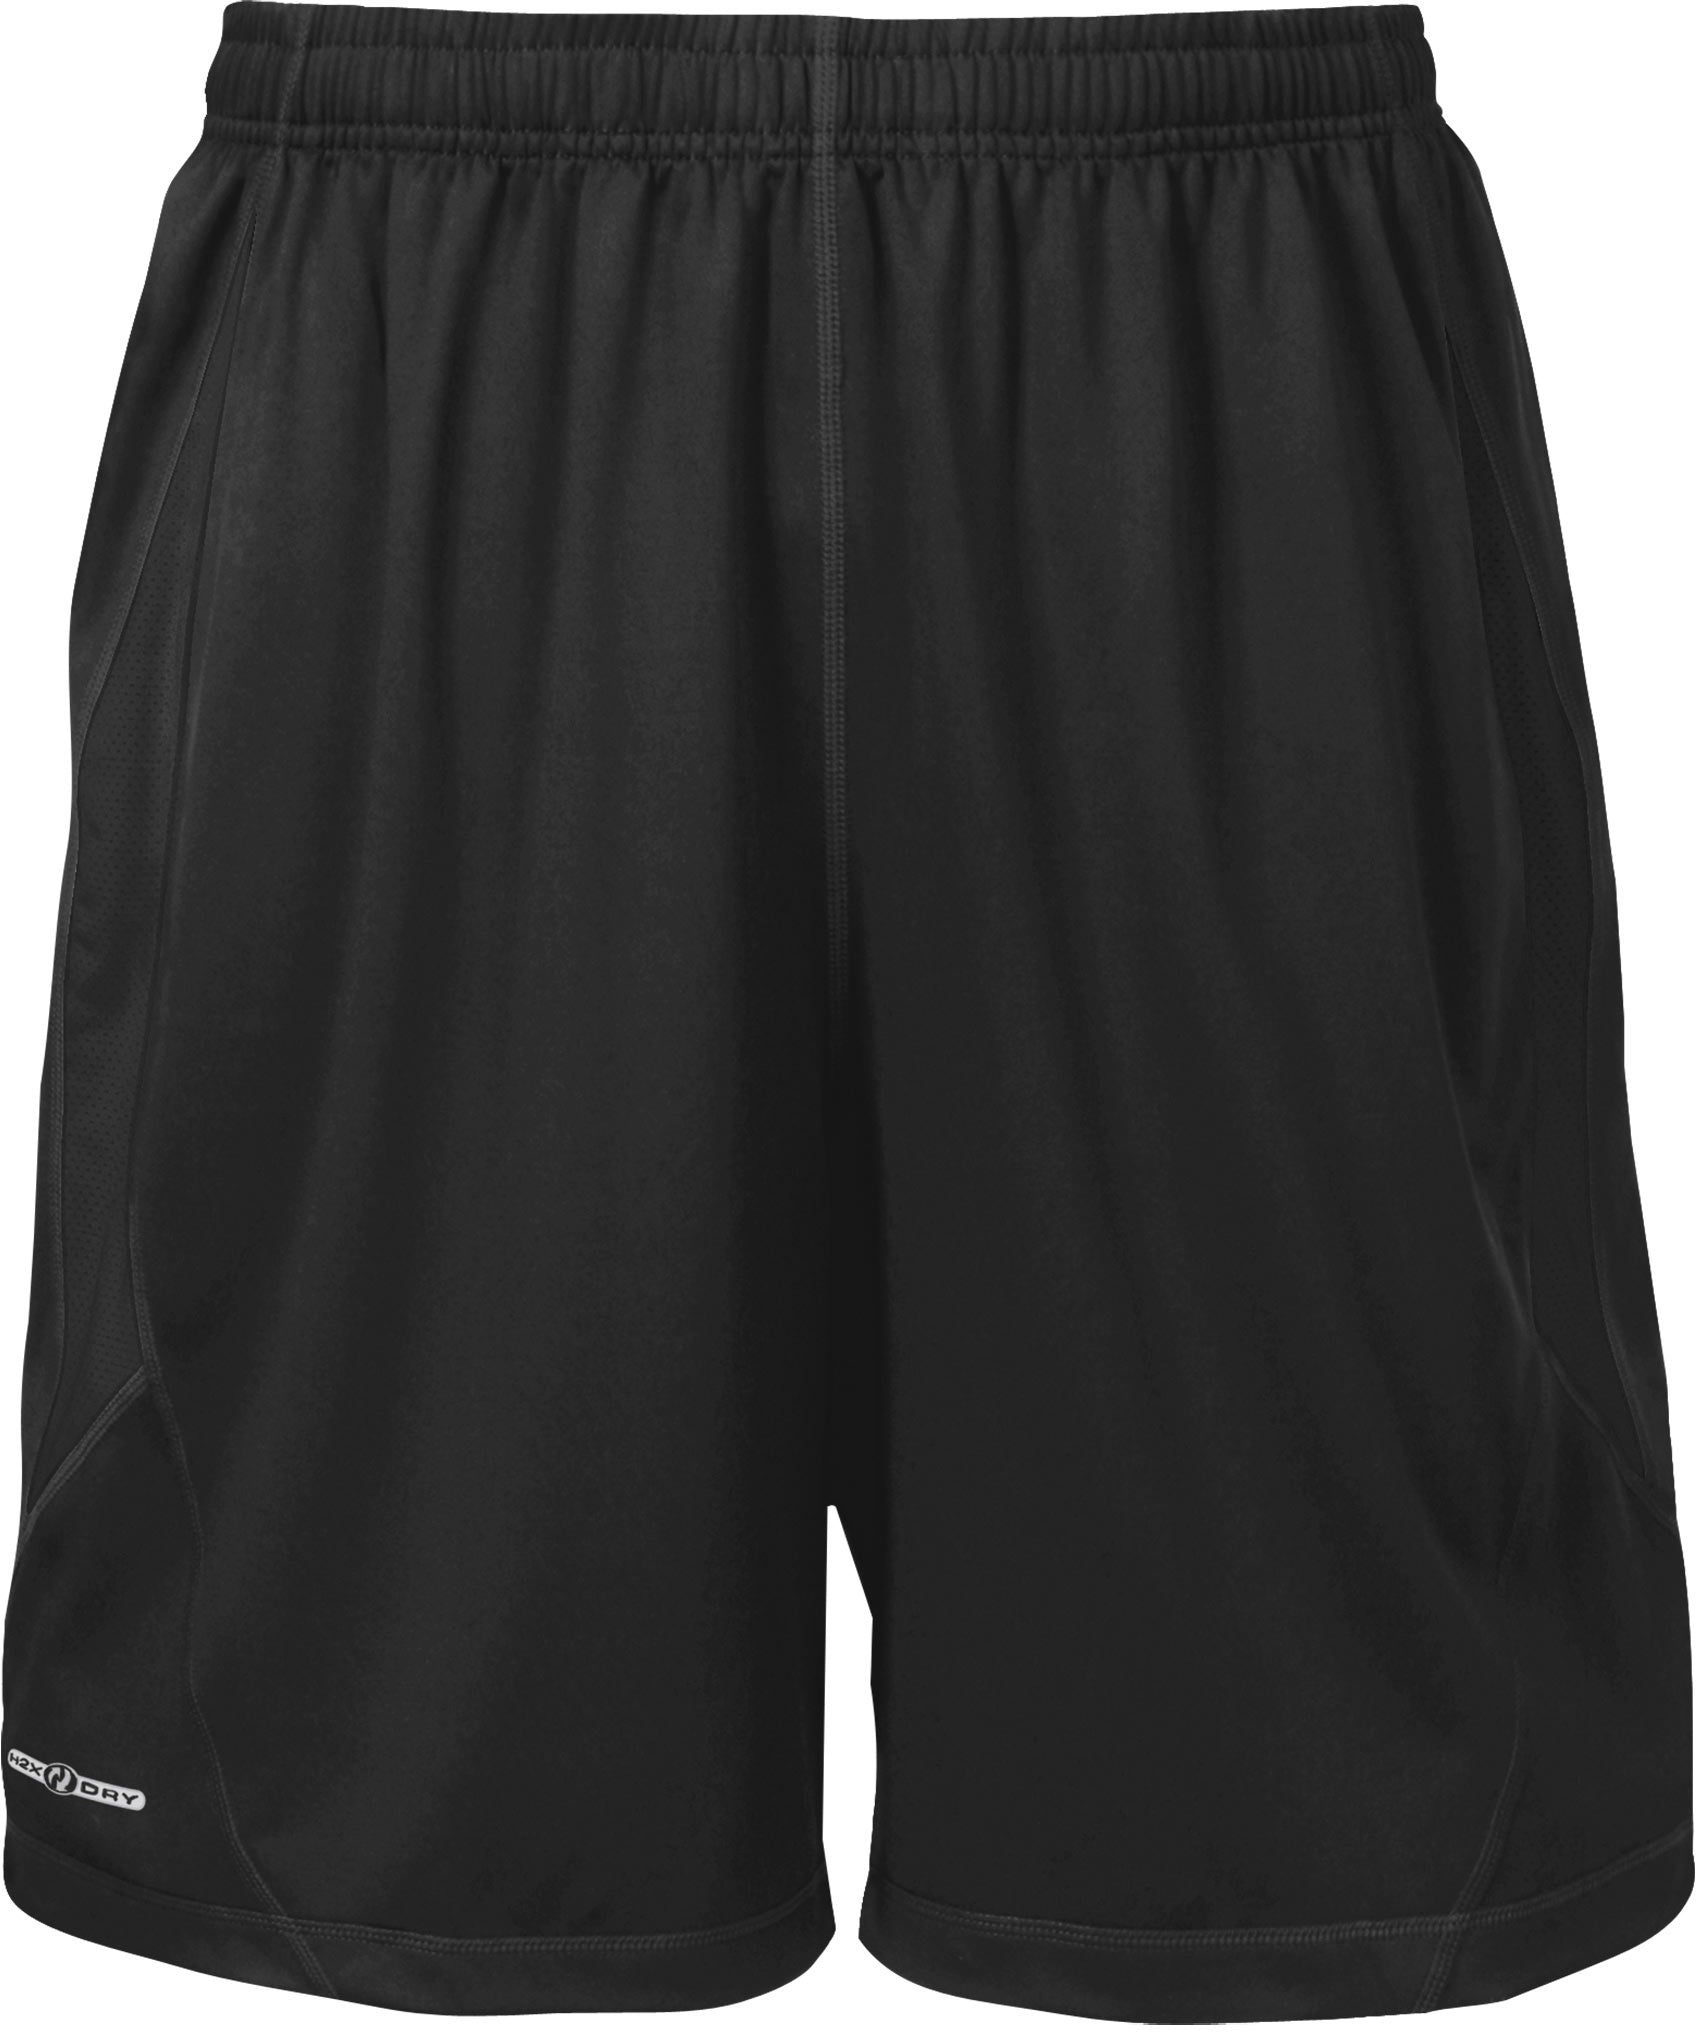 STORMTECH YOUTH 2X-DRY® SHORTS